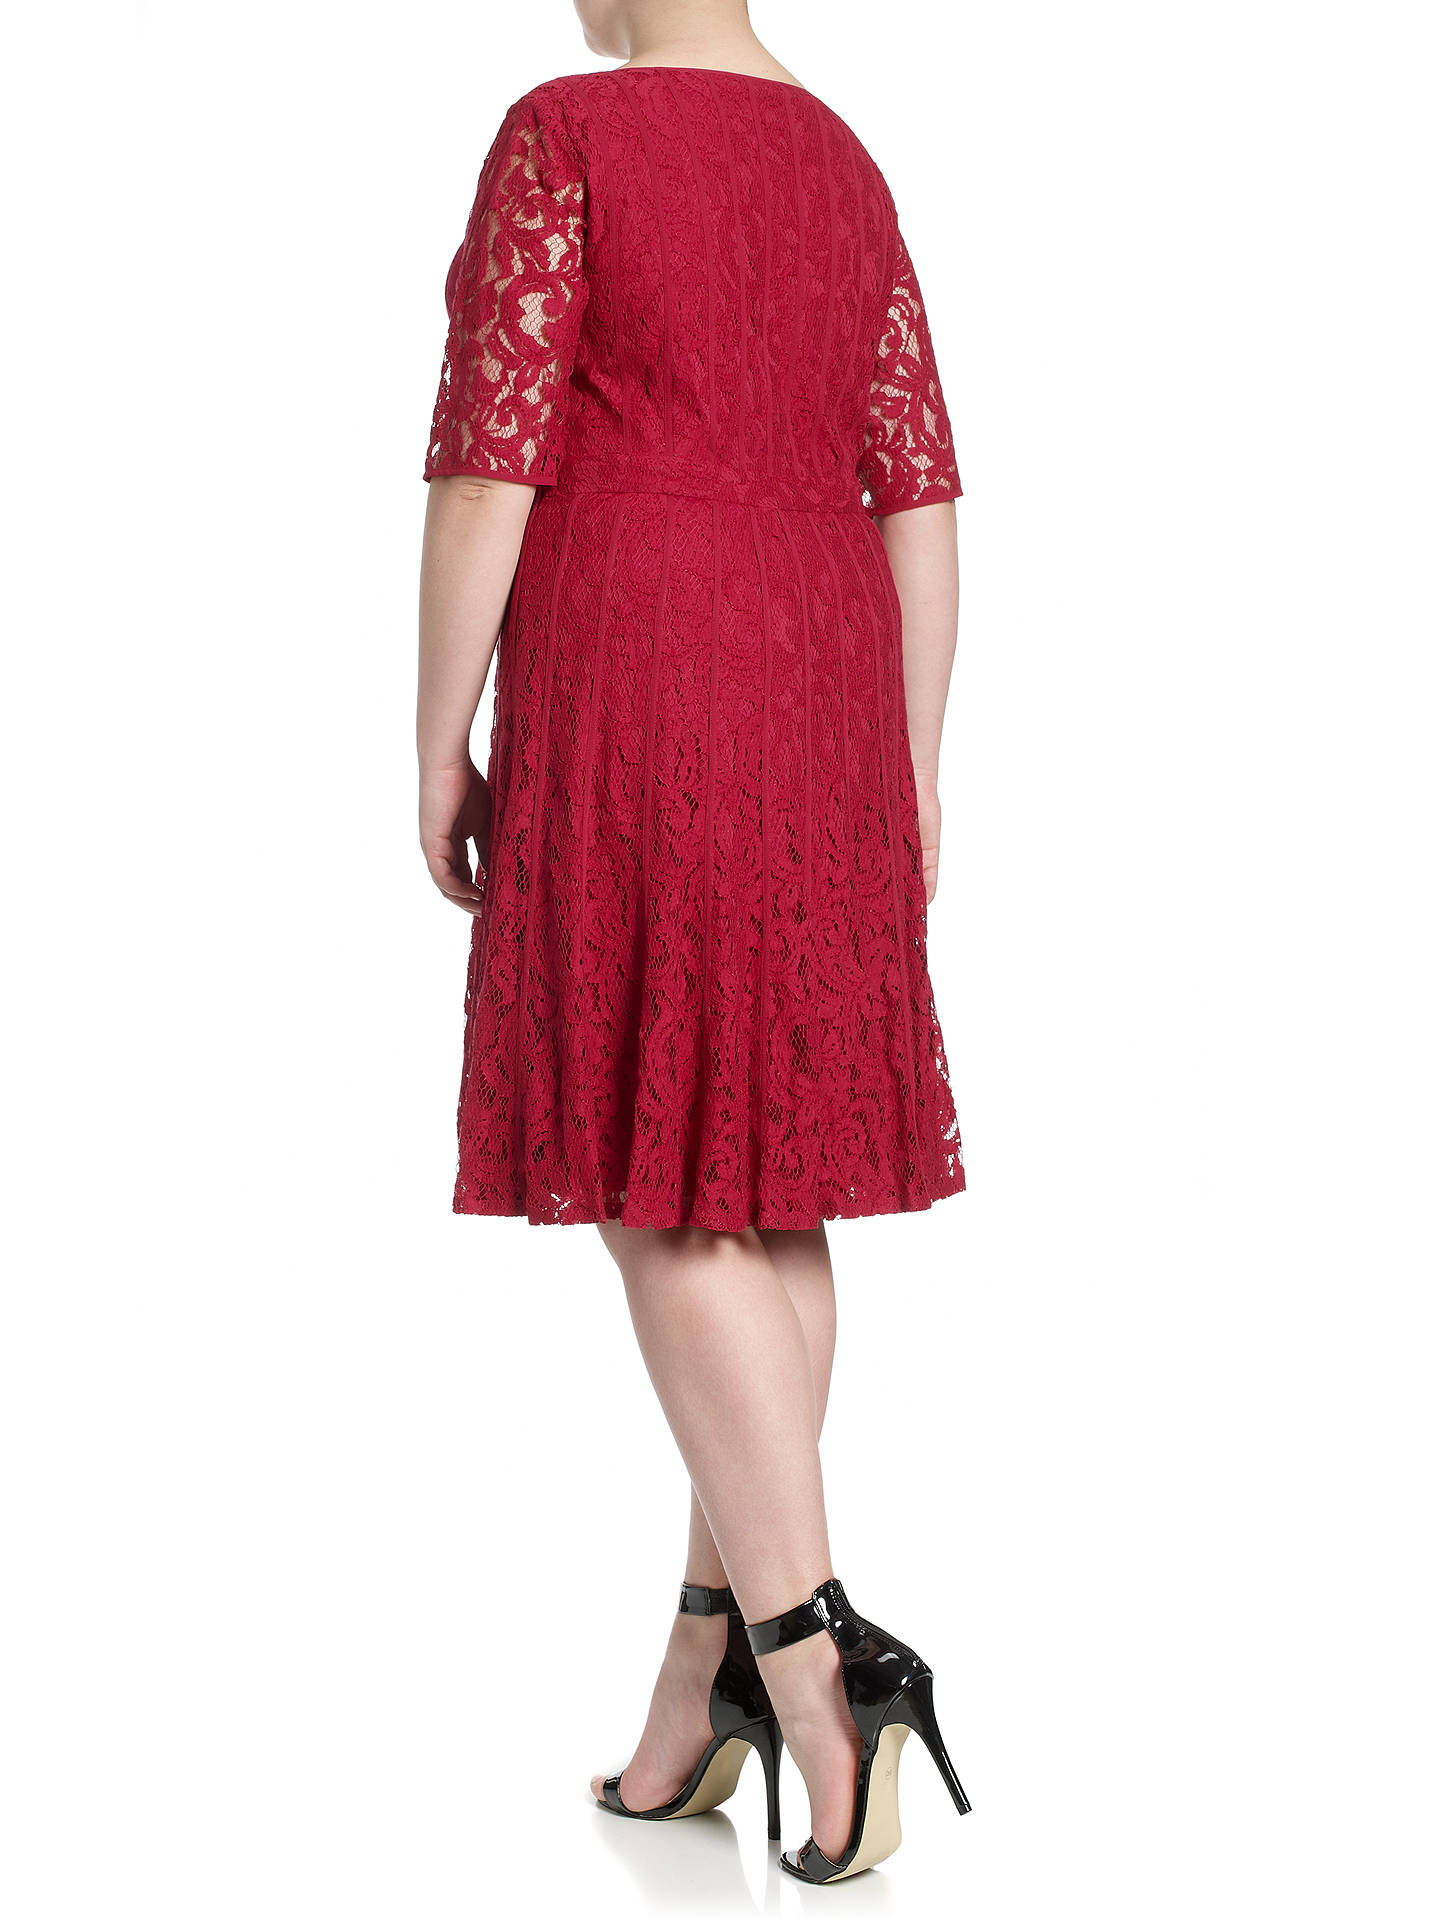 Adrianna Papell Plus Size Lace Fractured Dress Flare Red